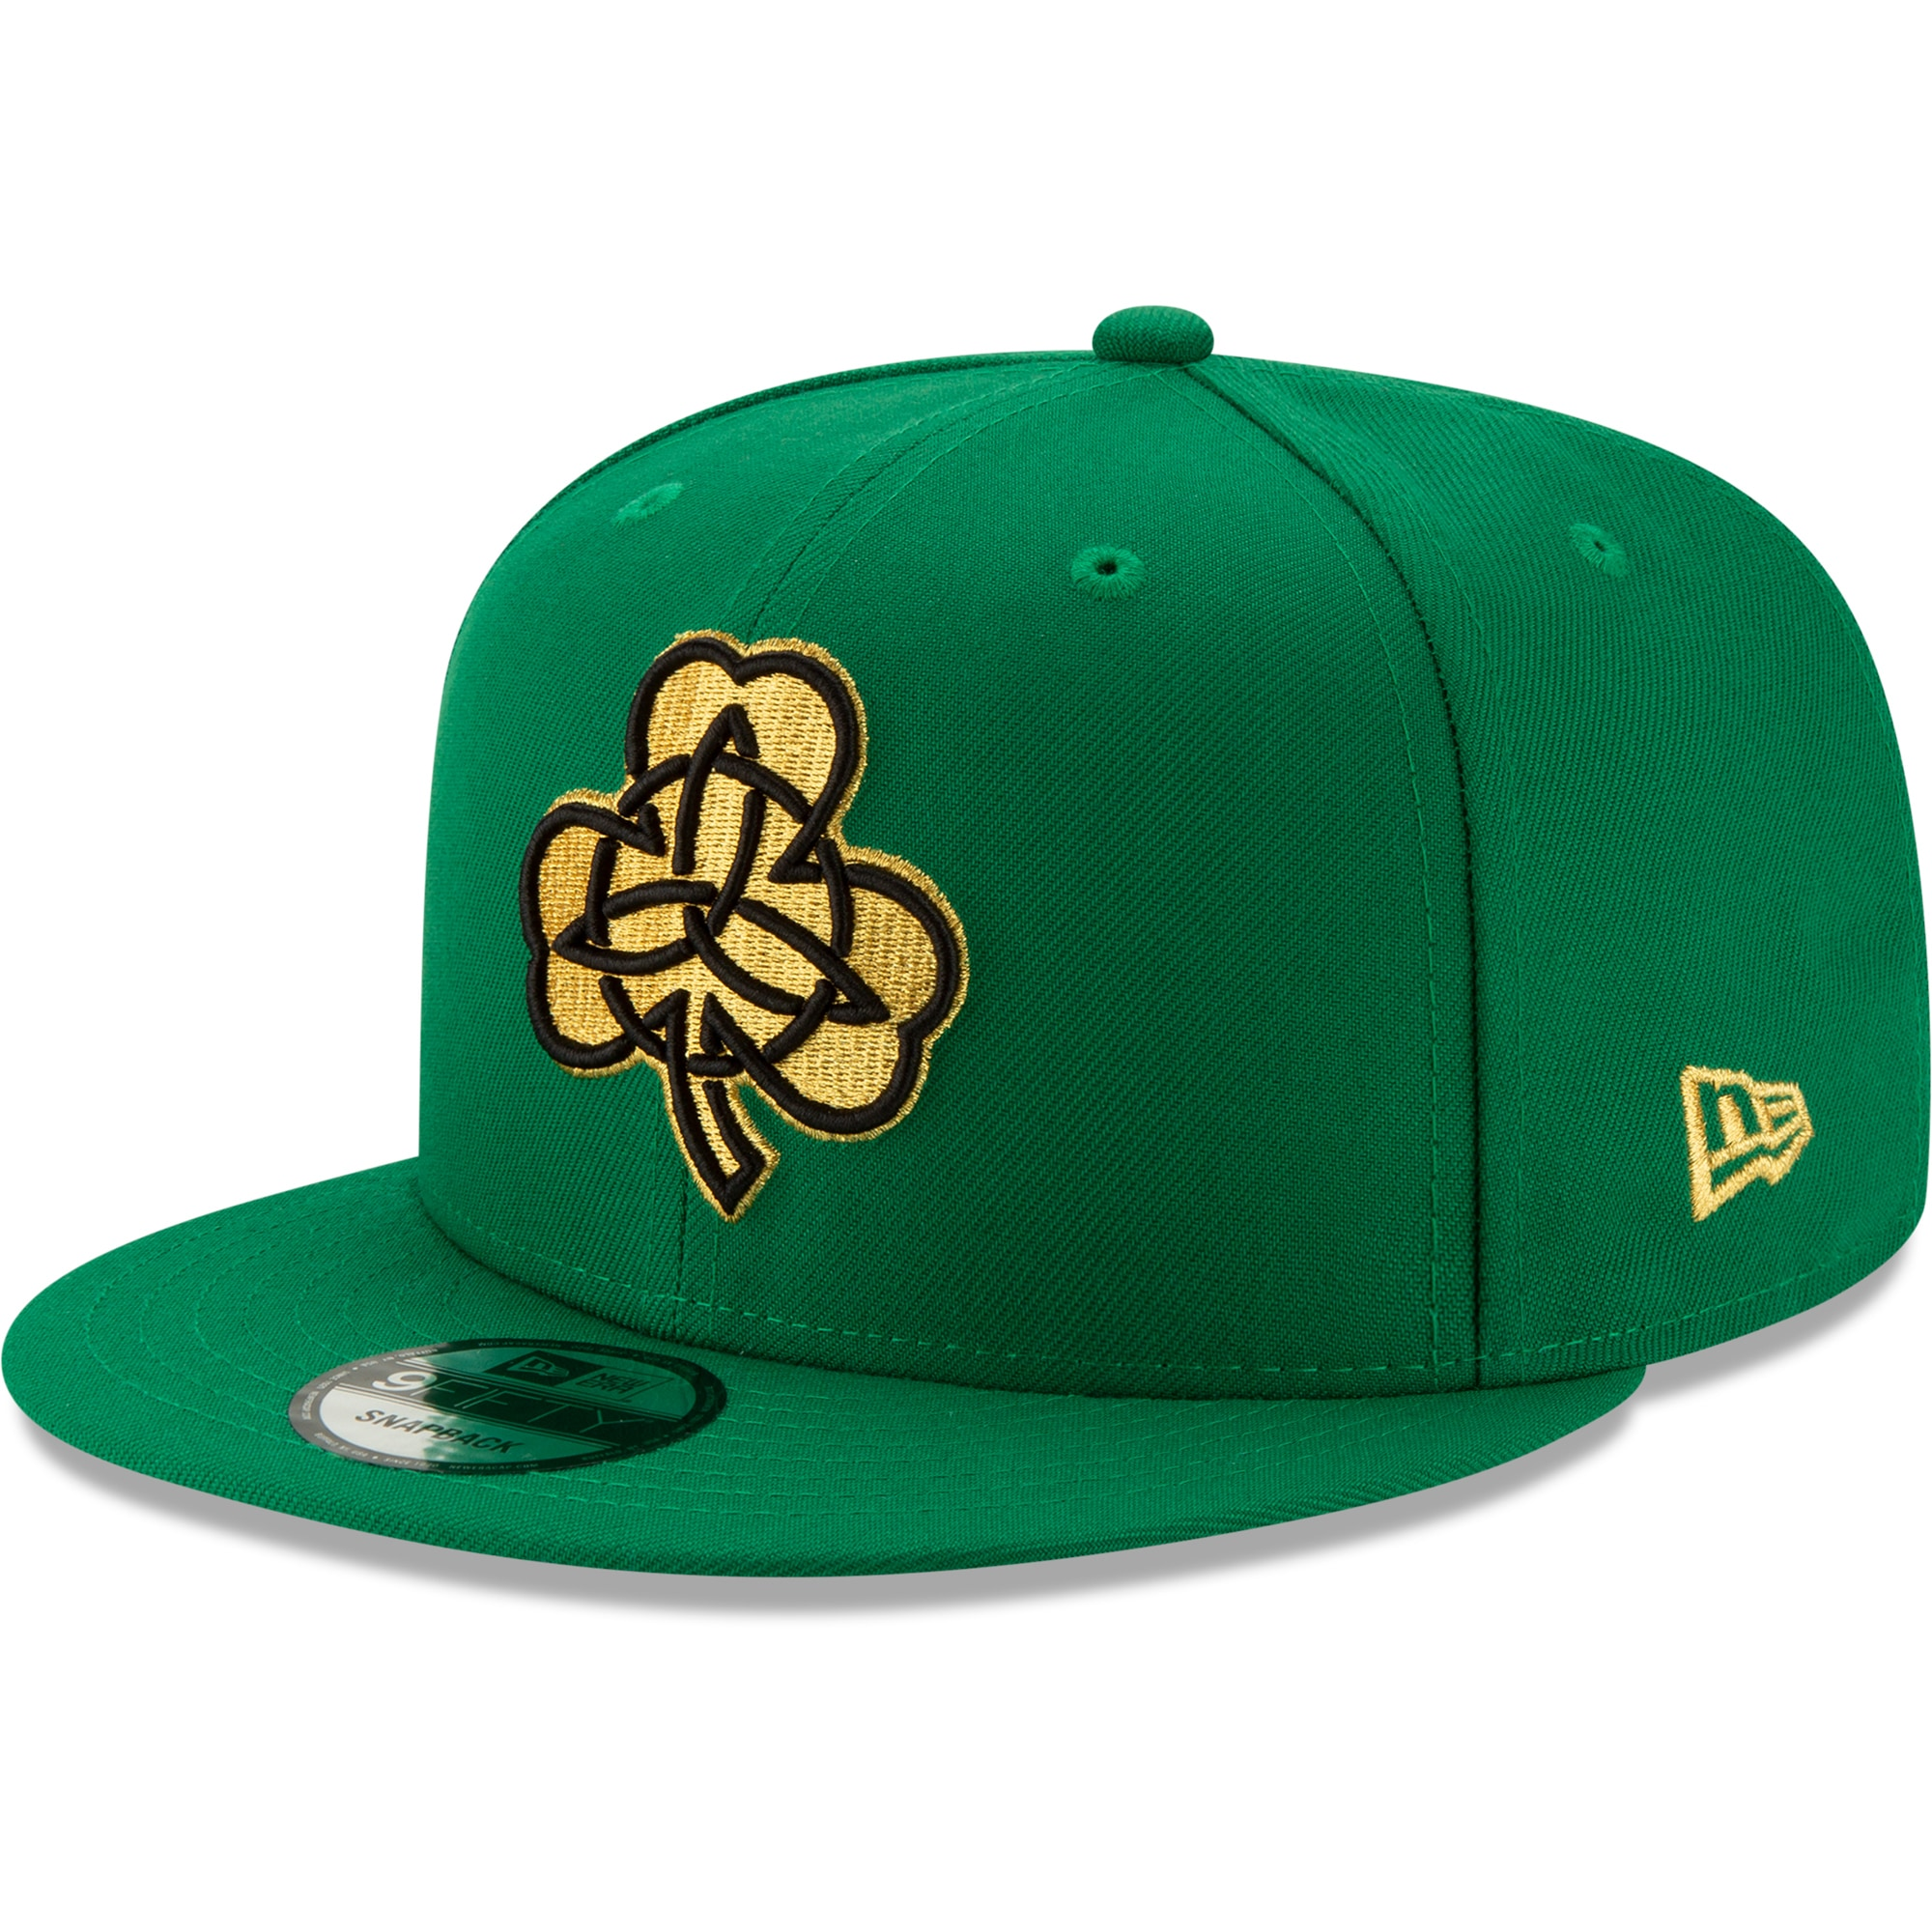 Boston Celtics New Era 2019/20 City Edition 9FIFTY Snapback Adjustable Hat - Green